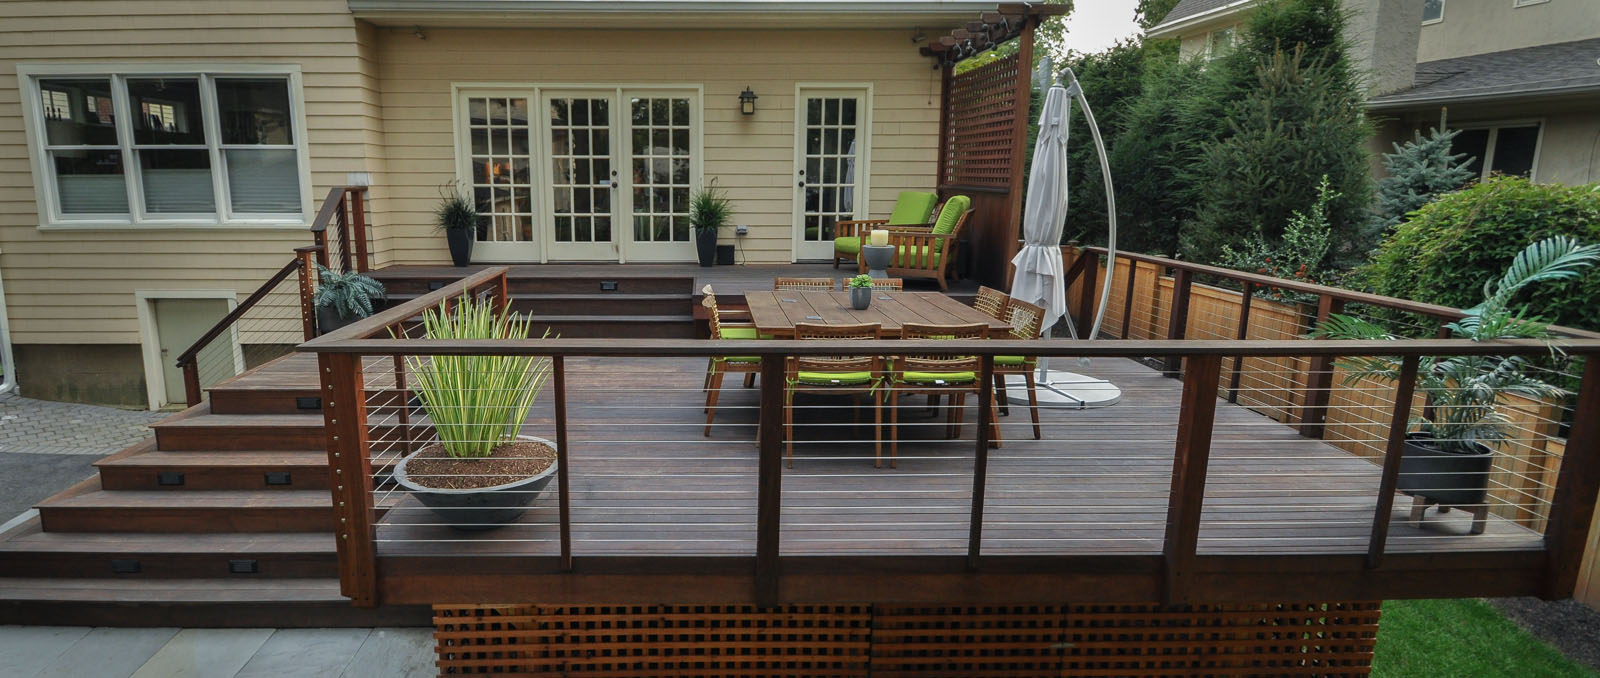 ipe deck, custom cable railing, lattice skirting - north jersey